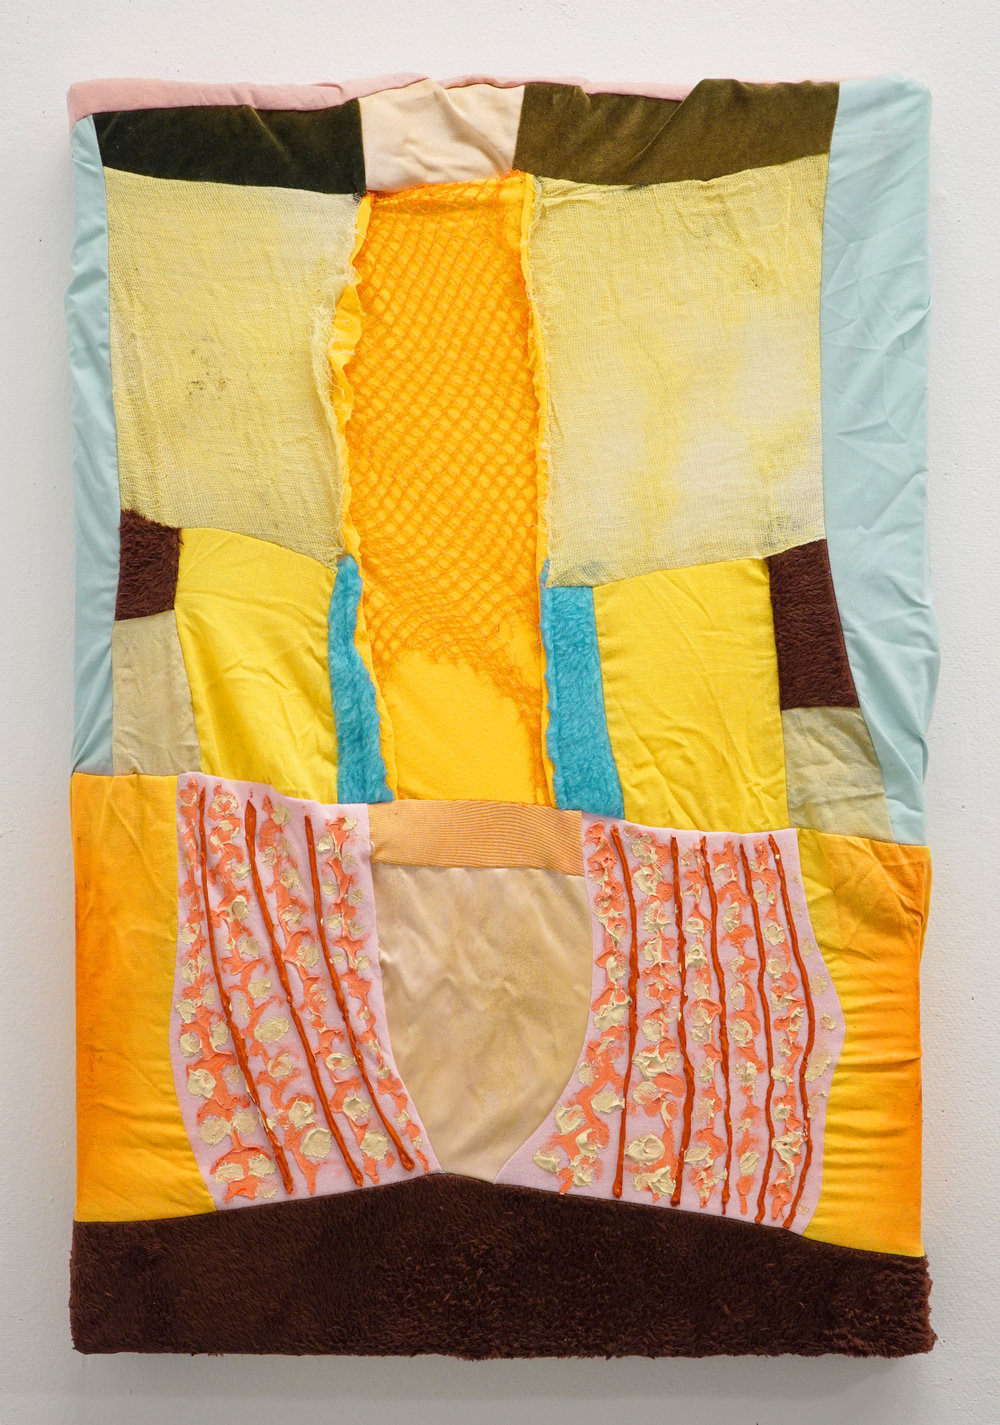 "Clamor   2017  Turmeric, green tea, onion, cotton fabric, cotton gauze, faux fur, plastic mesh, satin, velvet, acrylic paint.  25 1/2"" x 18 1/2"""